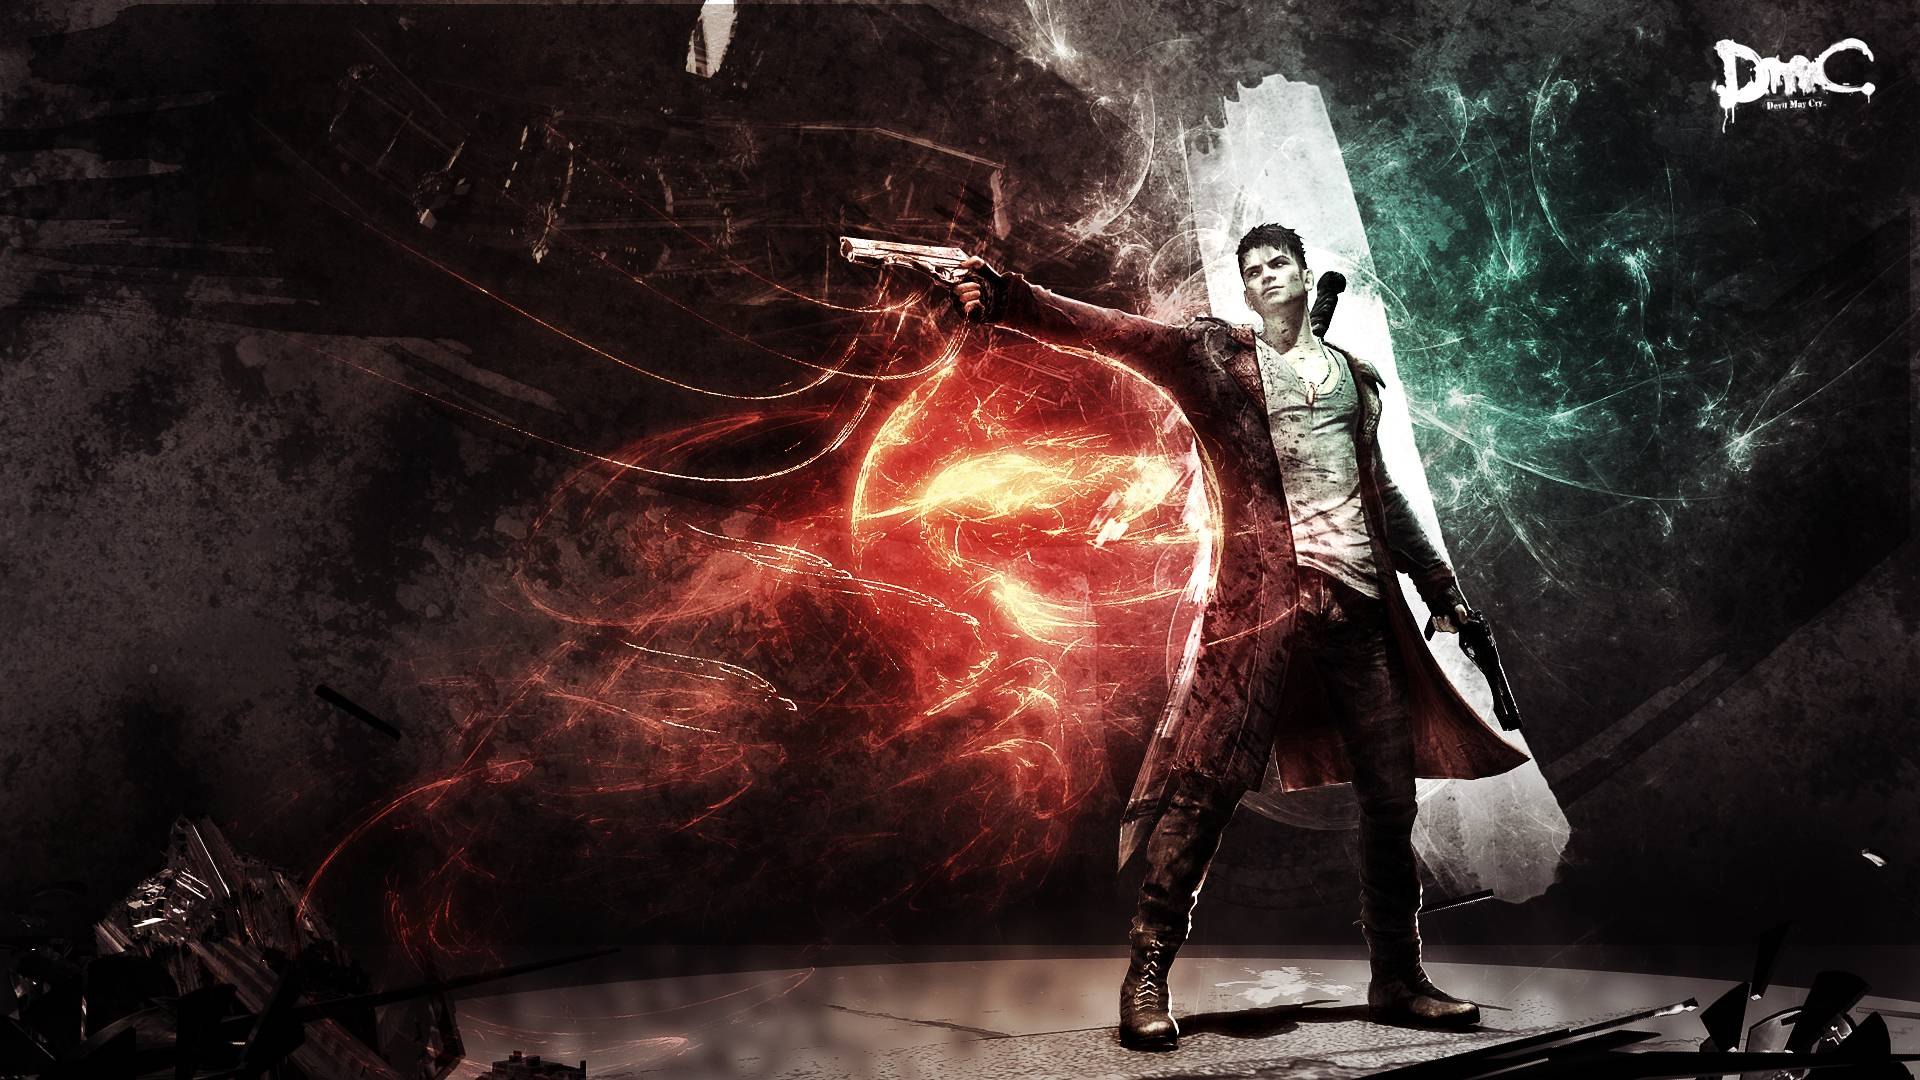 dmc-devil-may-cry-hd-wallpaper